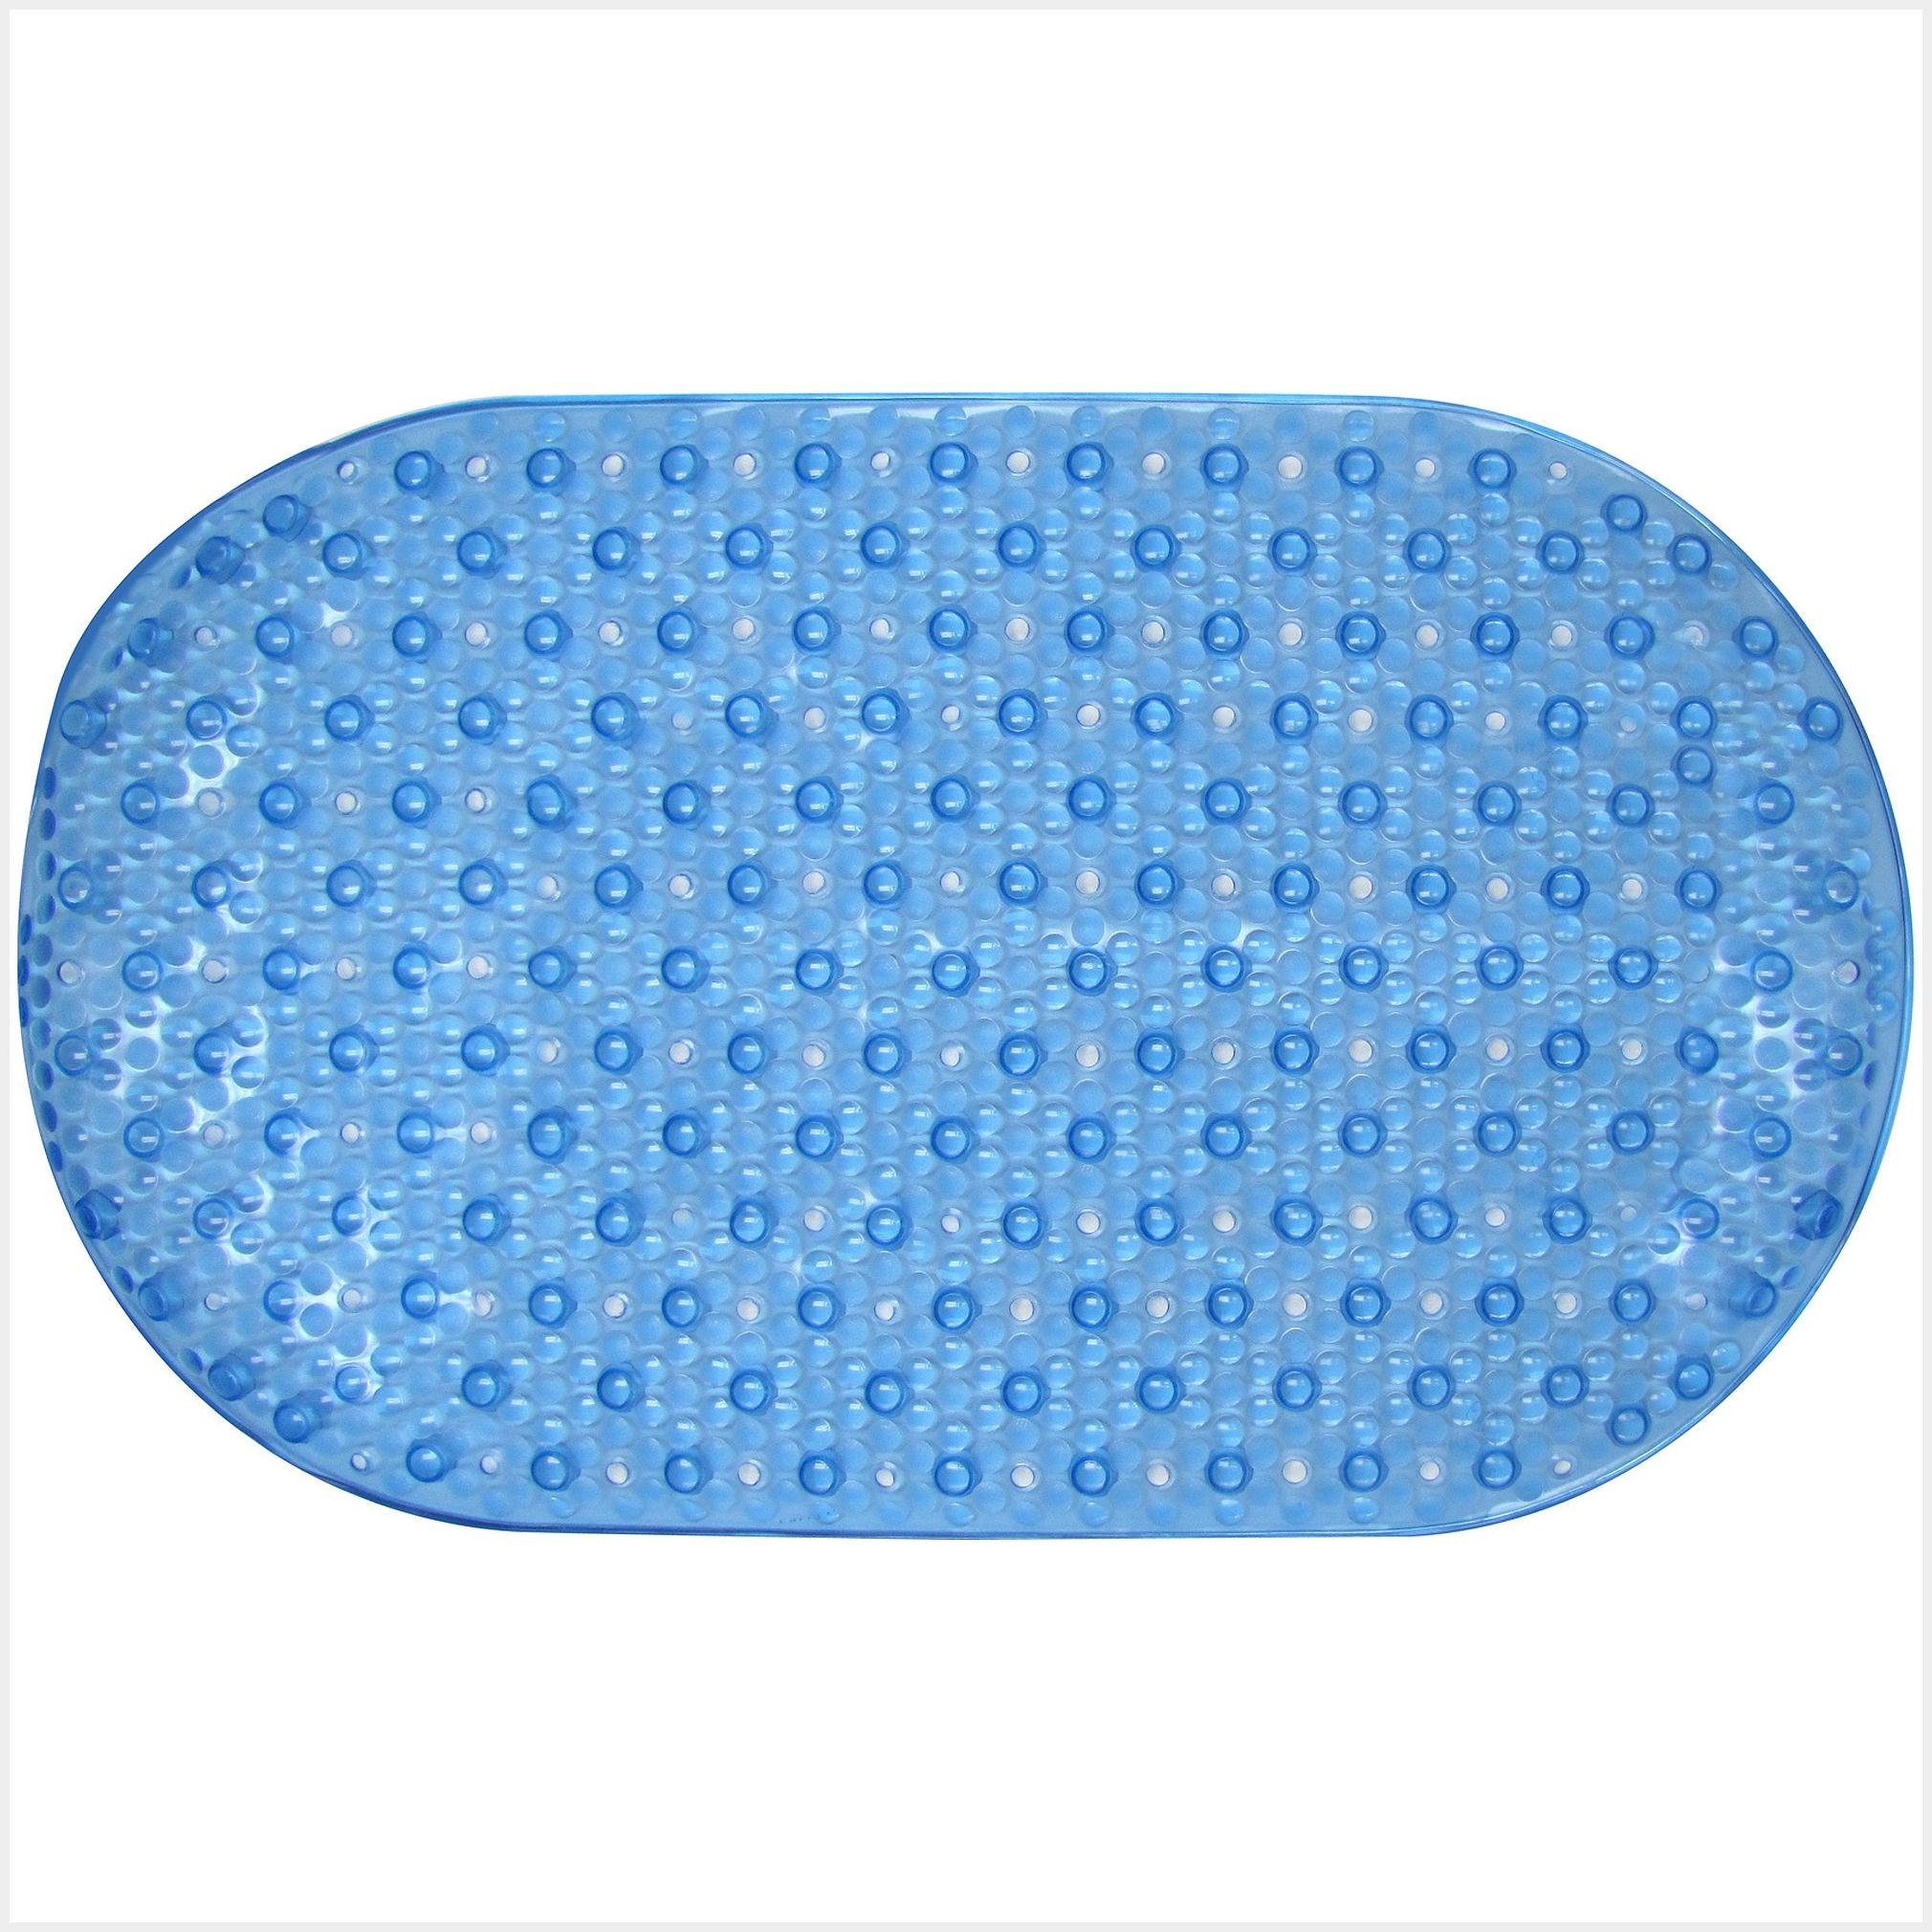 Rubber Bath Mats Without Suction Cups